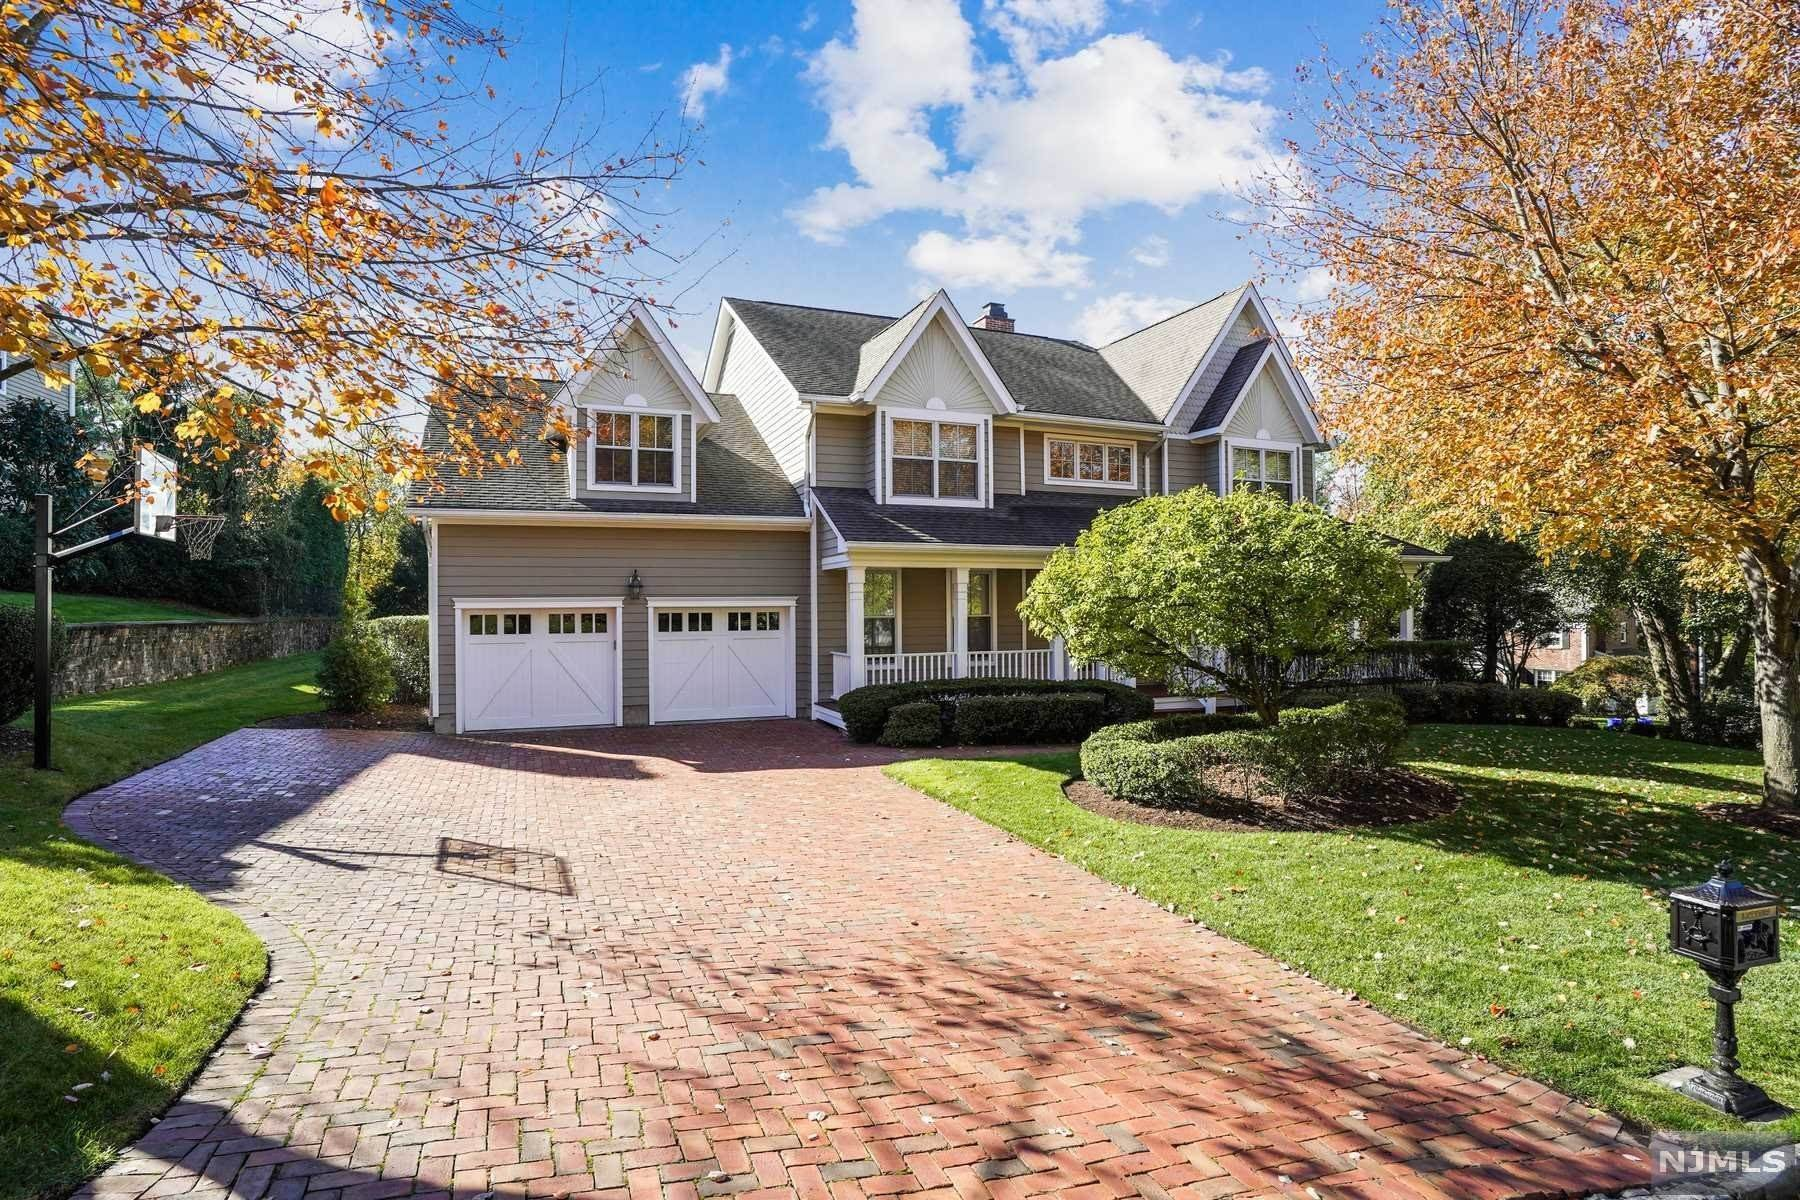 Single Family Home for Sale at 2 East Hill Court Tenafly, New Jersey, 07670 United States